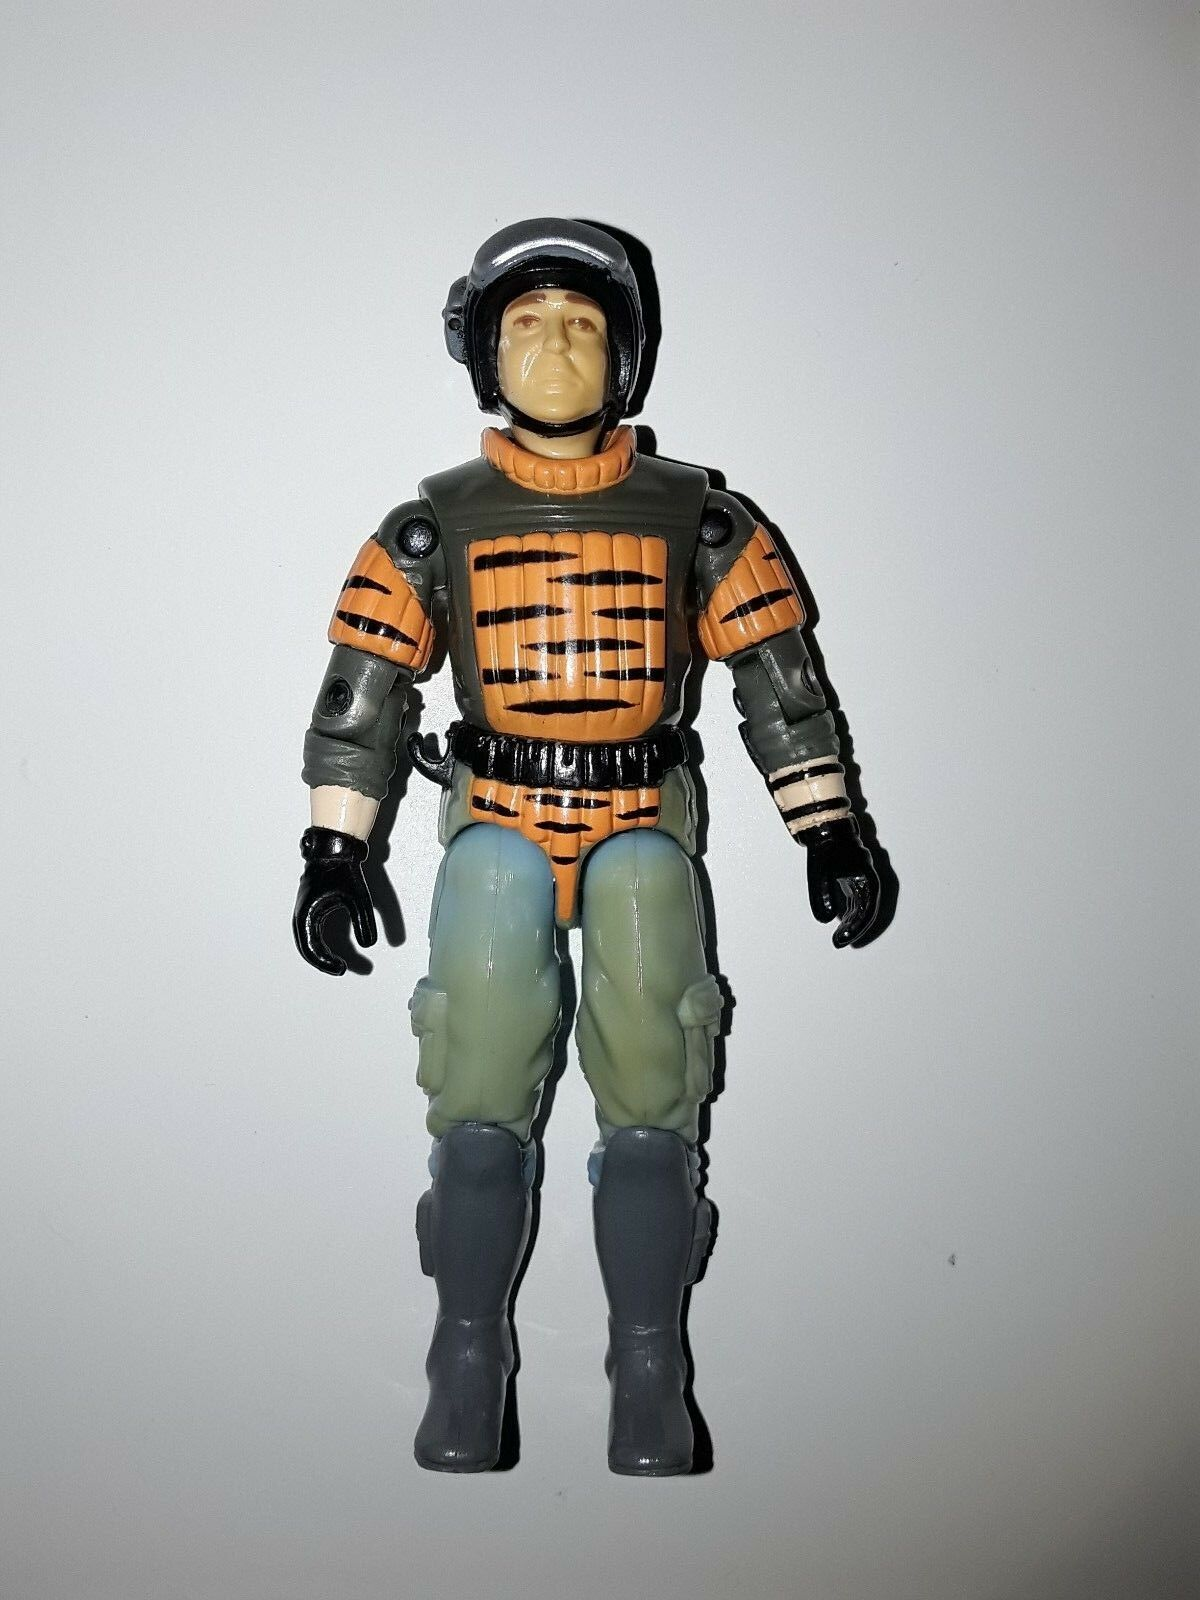 G.I. JOE 1991 Hasbro GI JOE  Sneak Peek Tiger Force   Action Figure